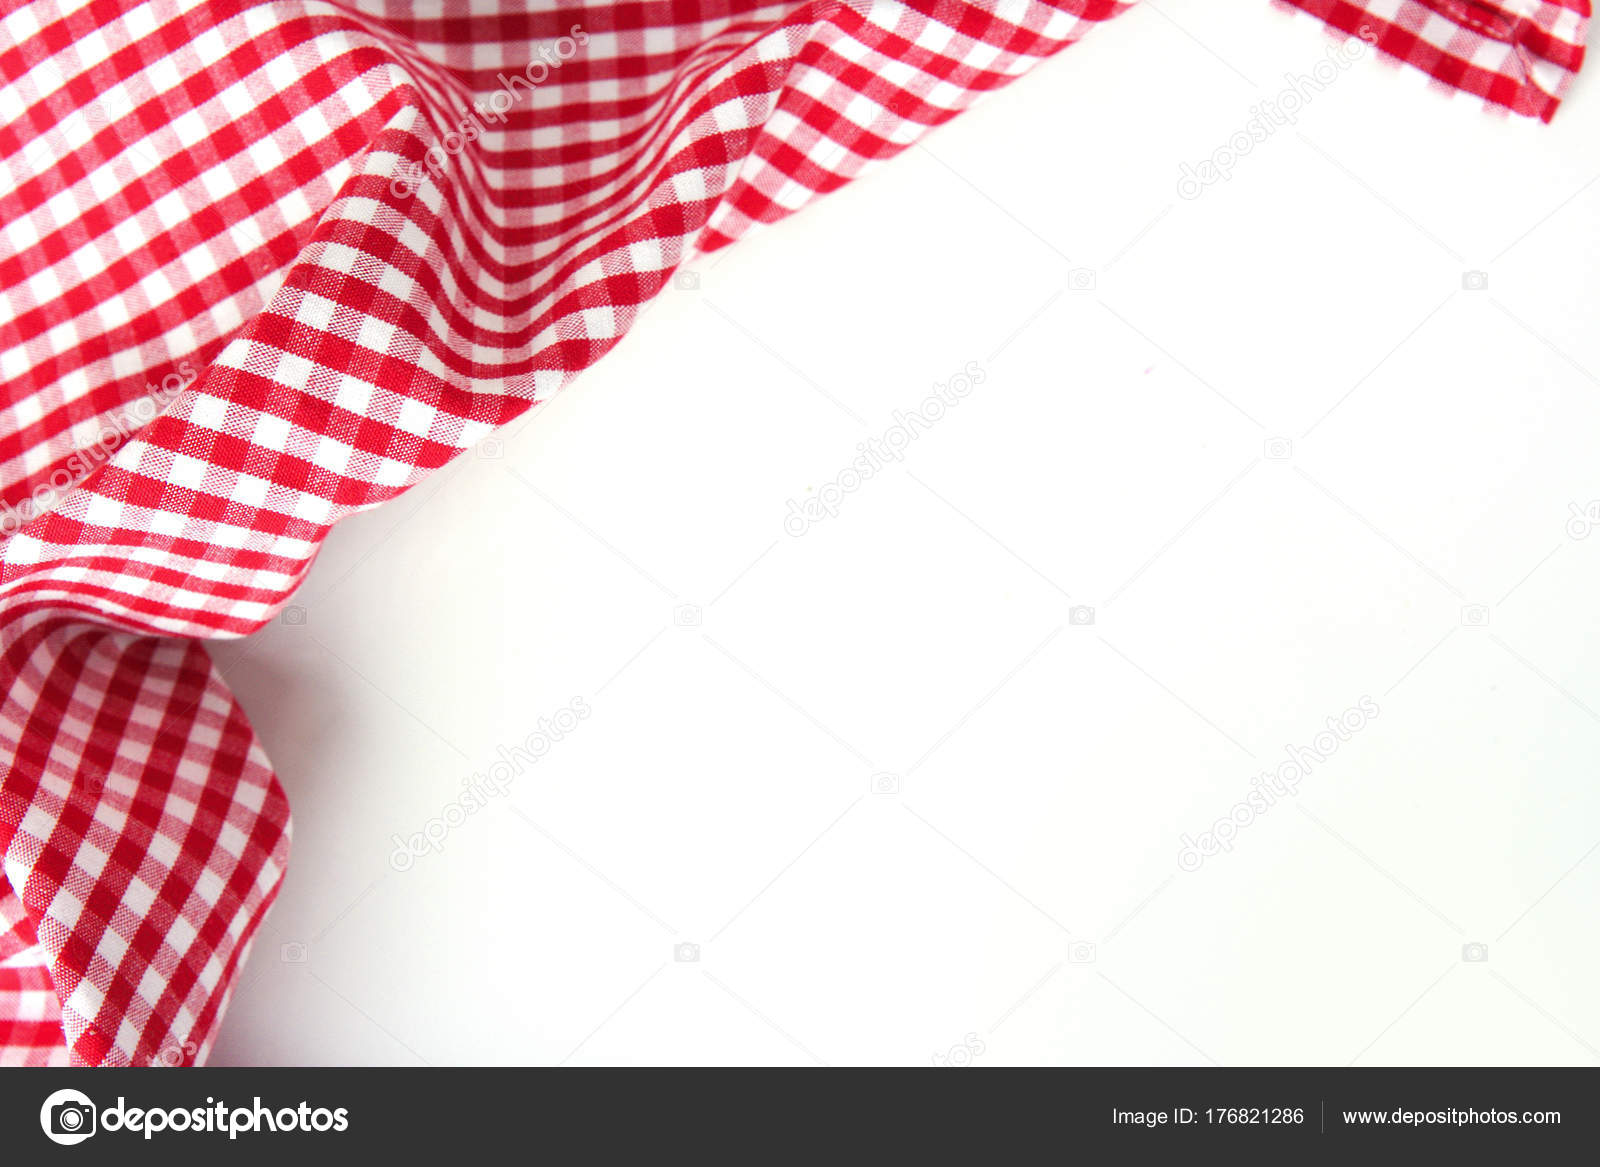 red checkere clothes on white table empty space background stock